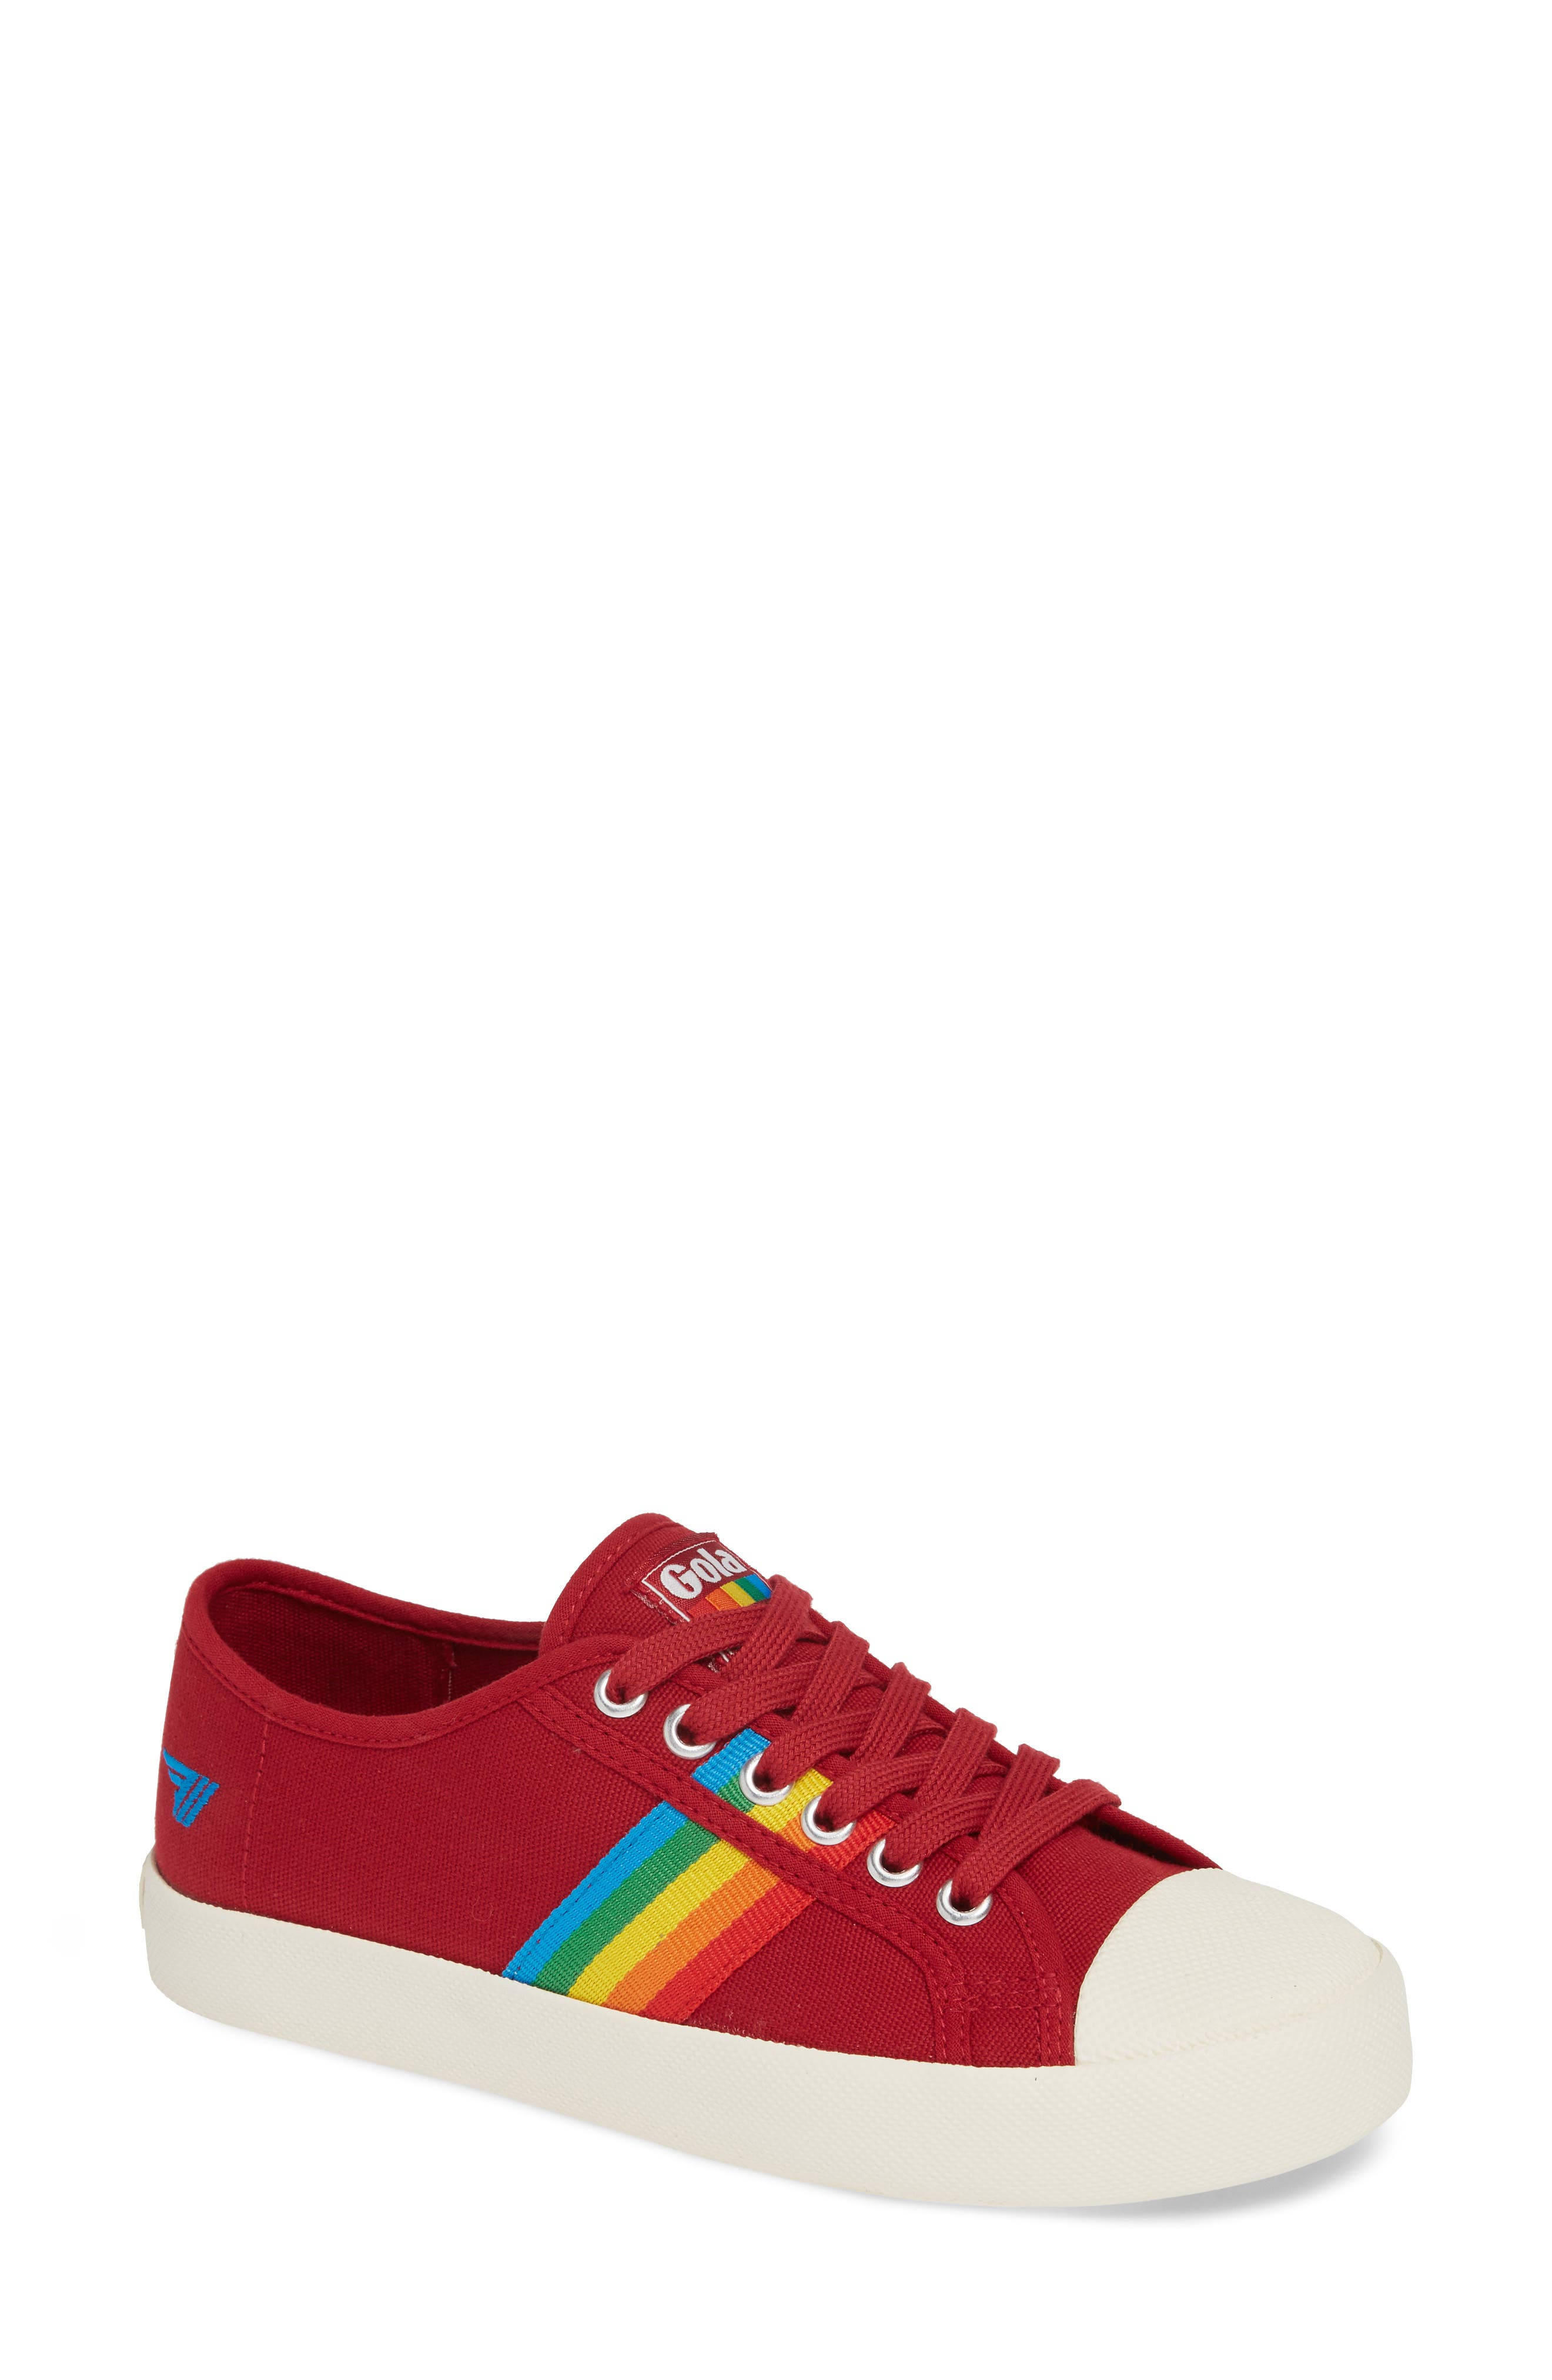 GOLA Coaster Rainbow Striped Sneaker in Deep Red/ Multi